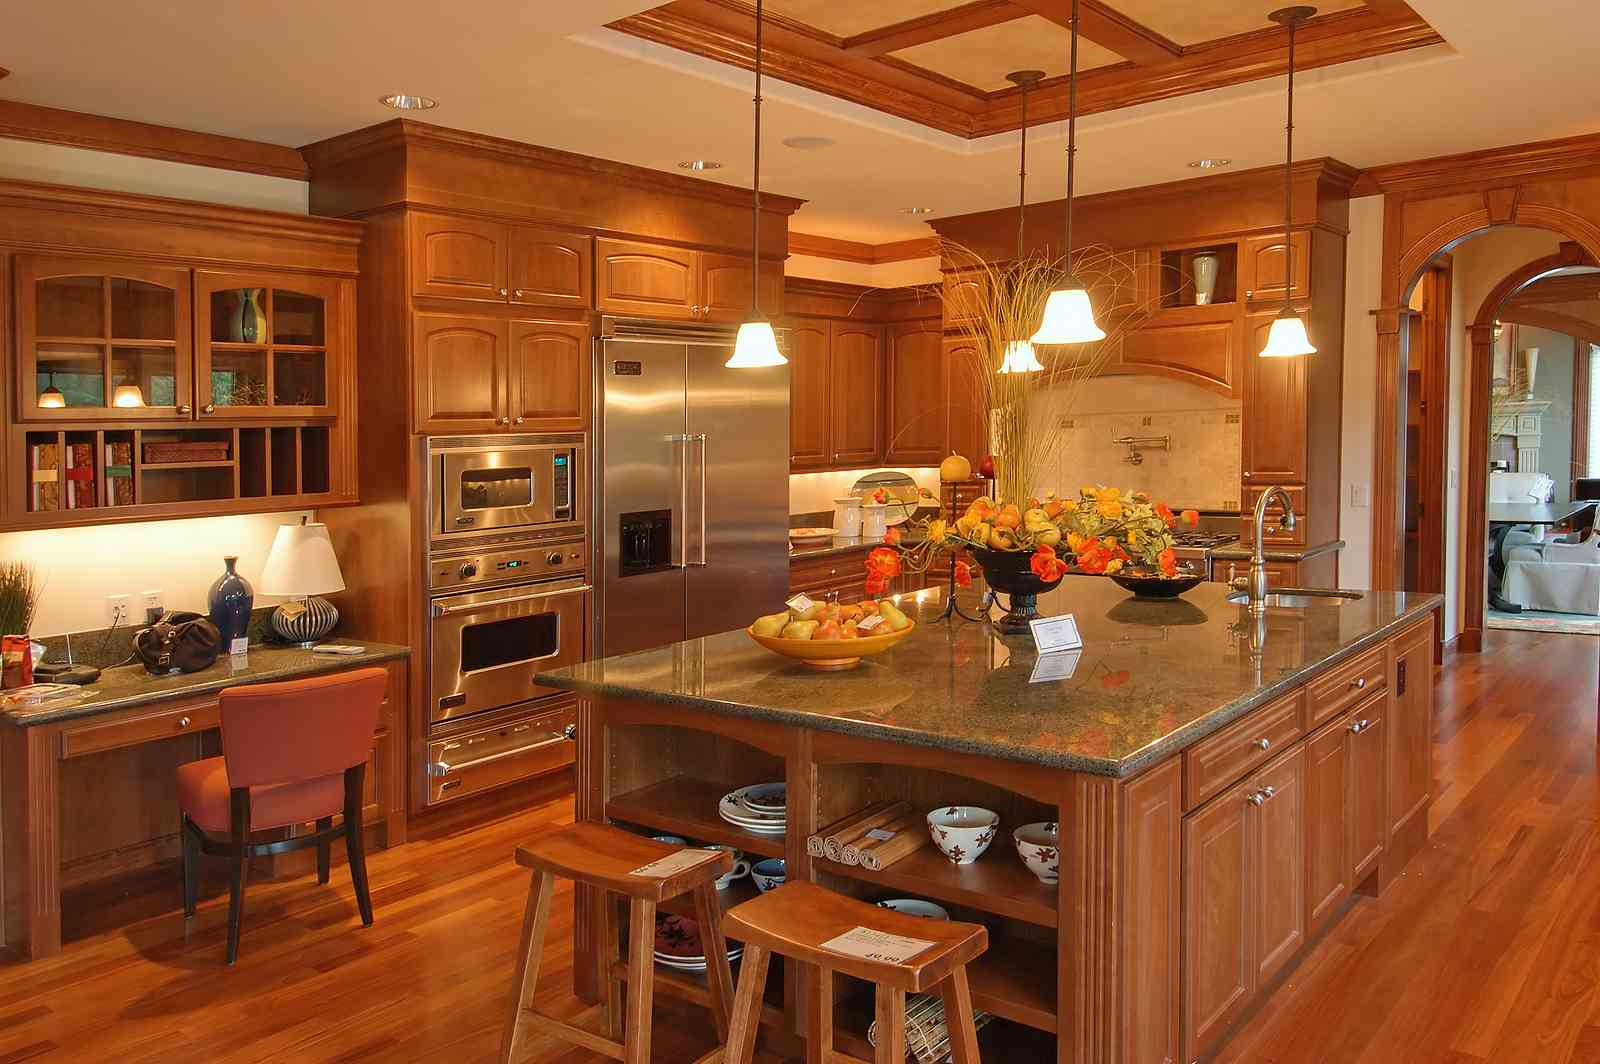 Elegant Kitchens decoration with peru thomasville cabinets and fridge plus oven and chandelier plus wooden floor ideas